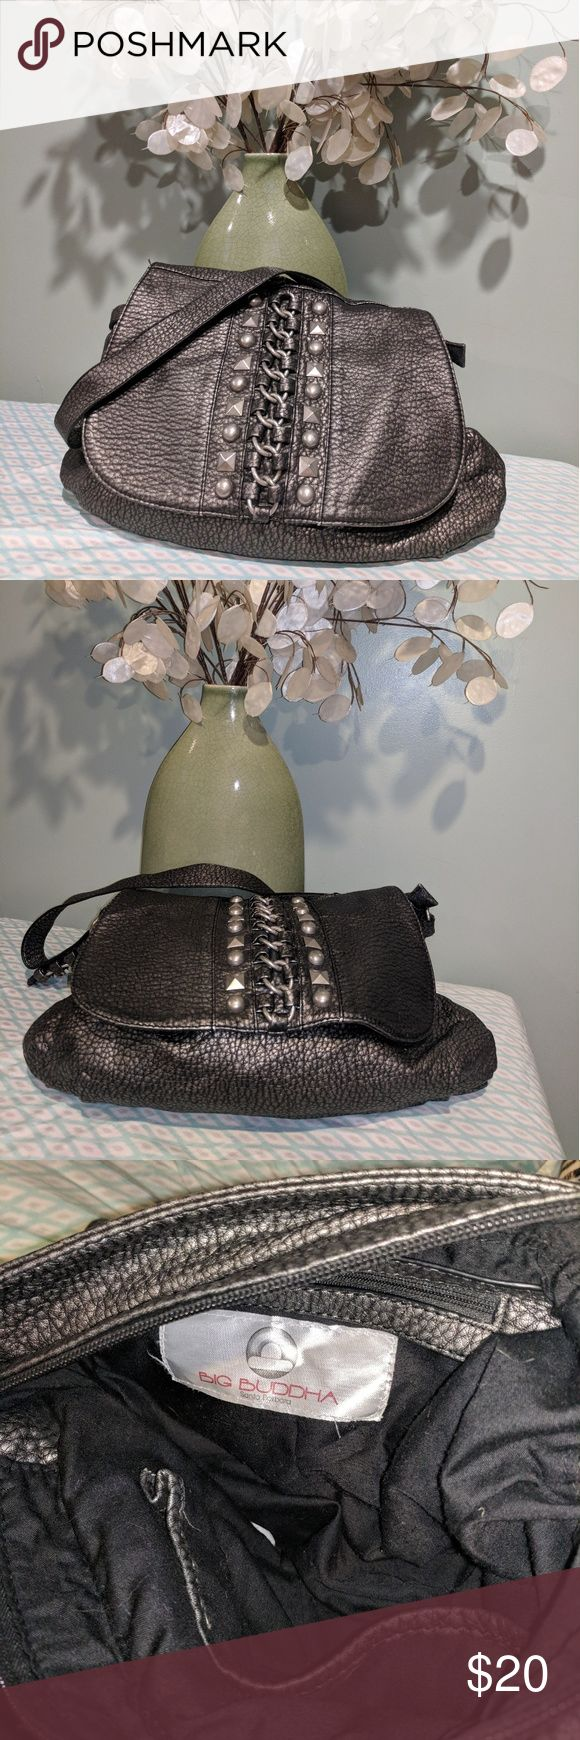 Big Buddha handbag This handbag is in good used condition. Beautiful metal work on the front and strap. Magnetic buttons and can also be zipped shut. Big Buddha Bags Shoulder Bags